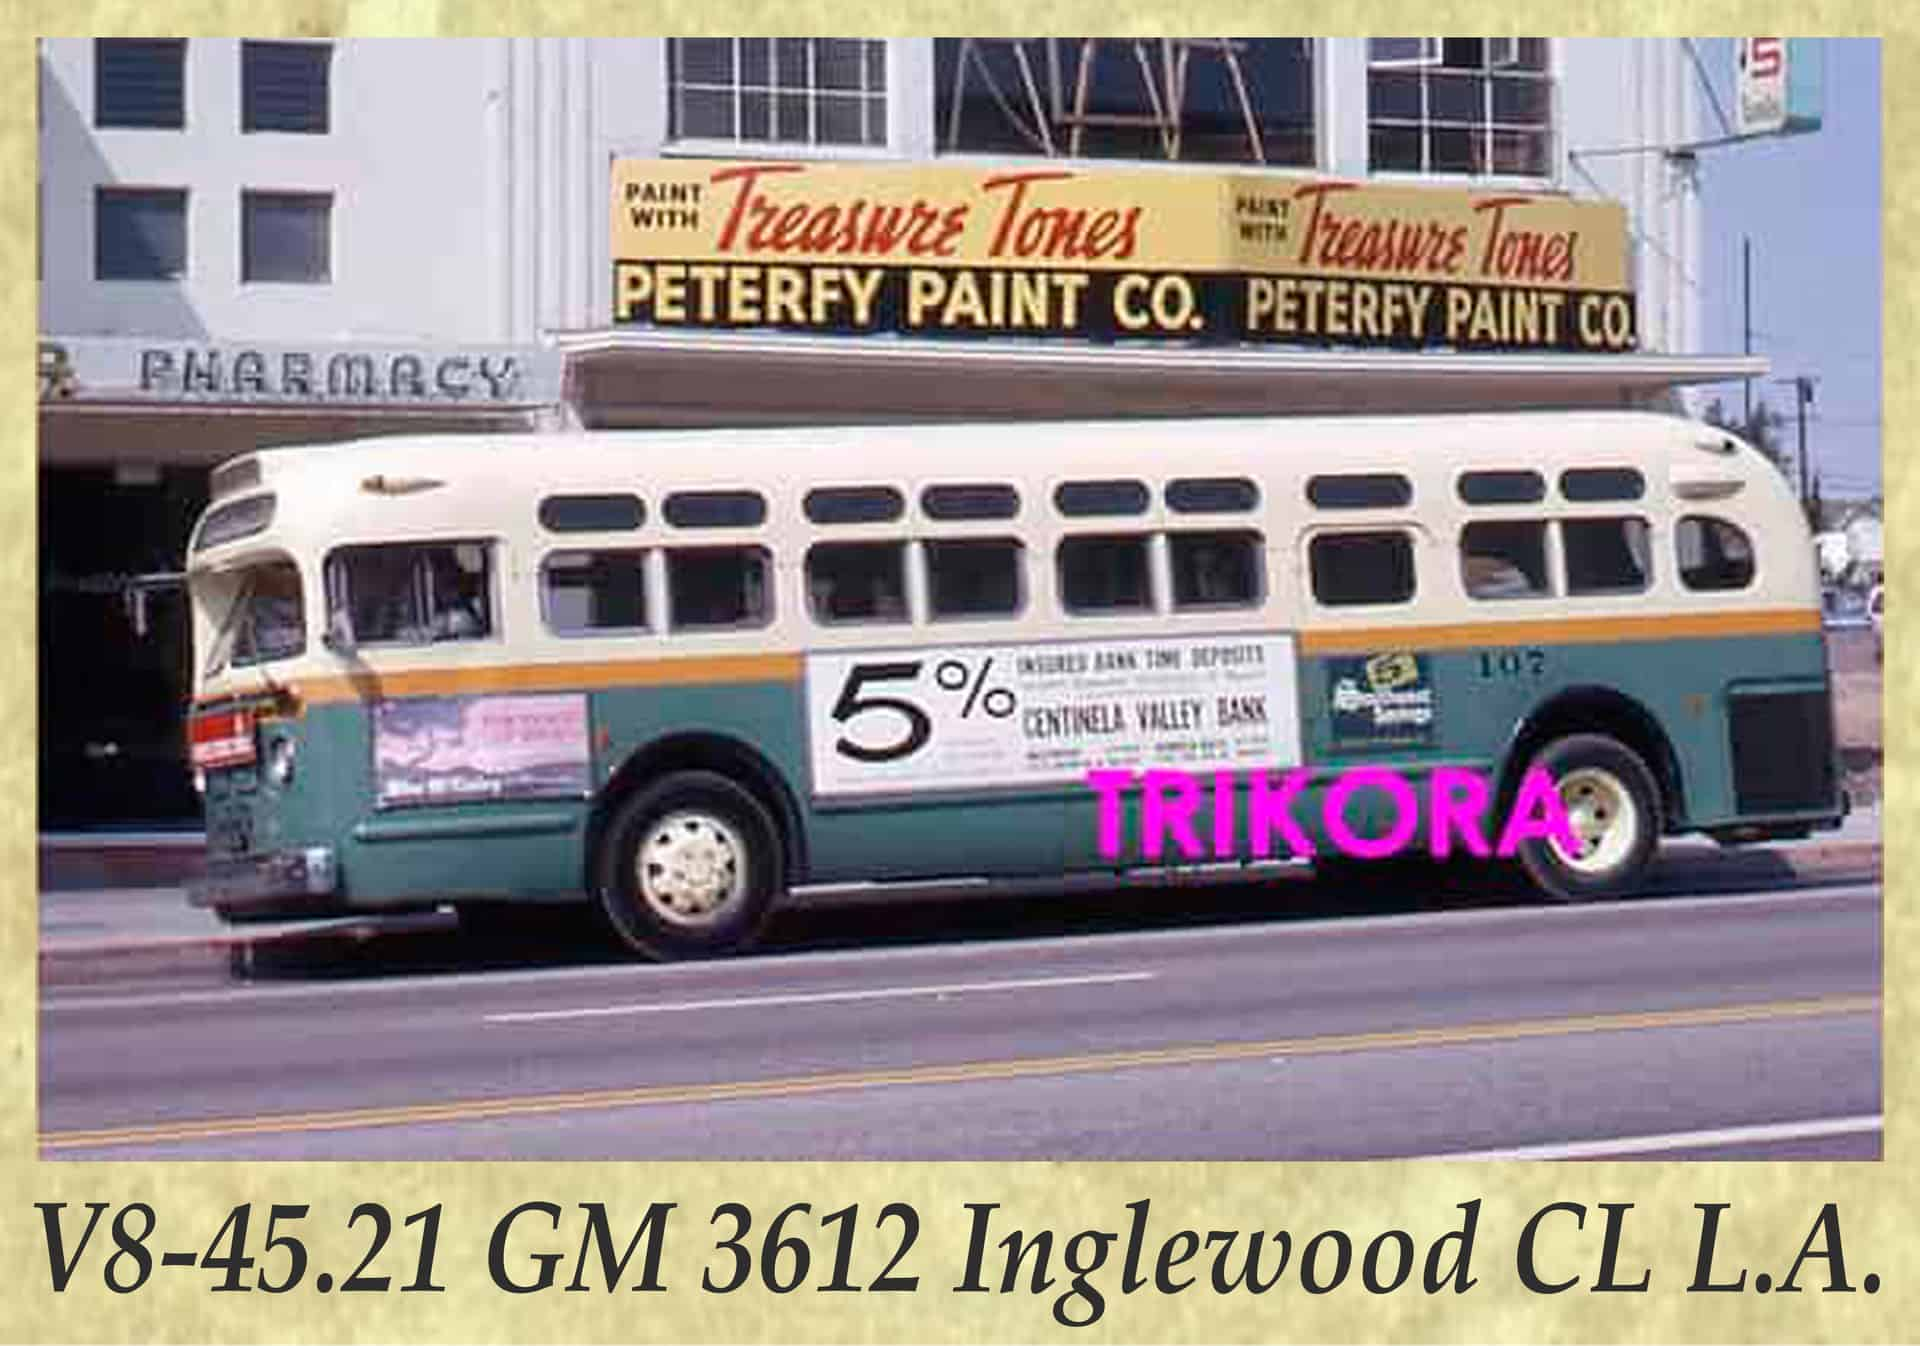 V8-45.21 GM 3612 Inglewood CL L.A.